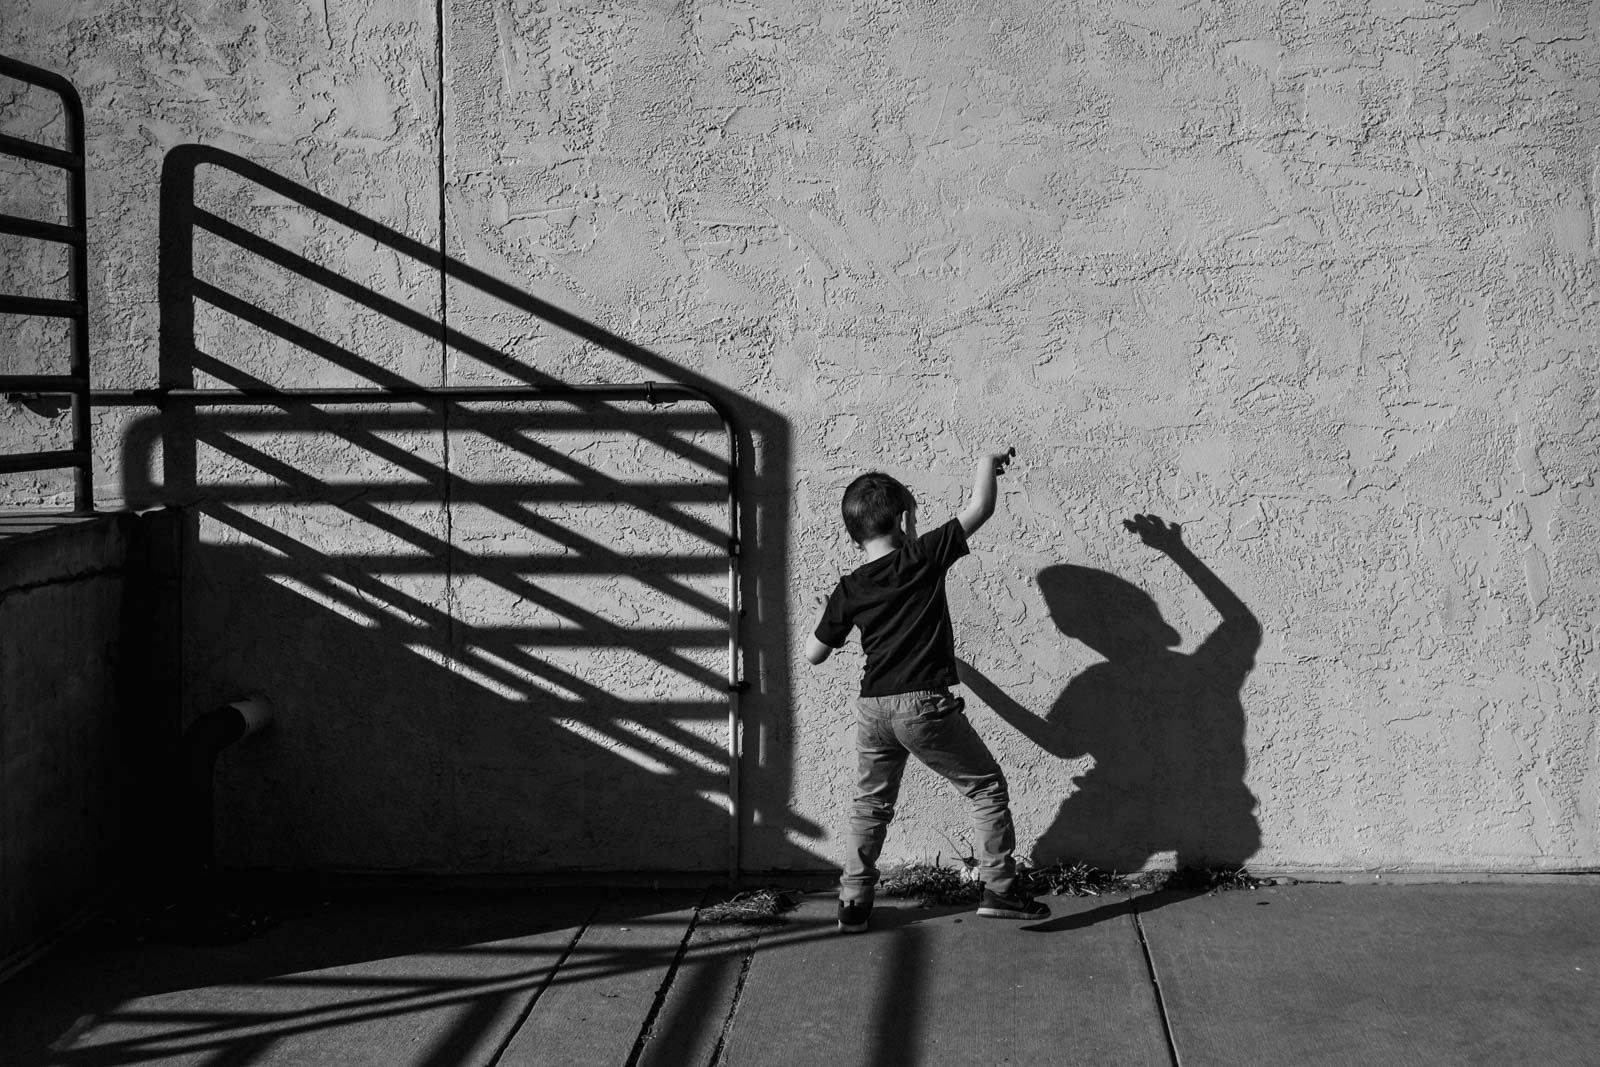 Boy plays with his shadow in black and white photo